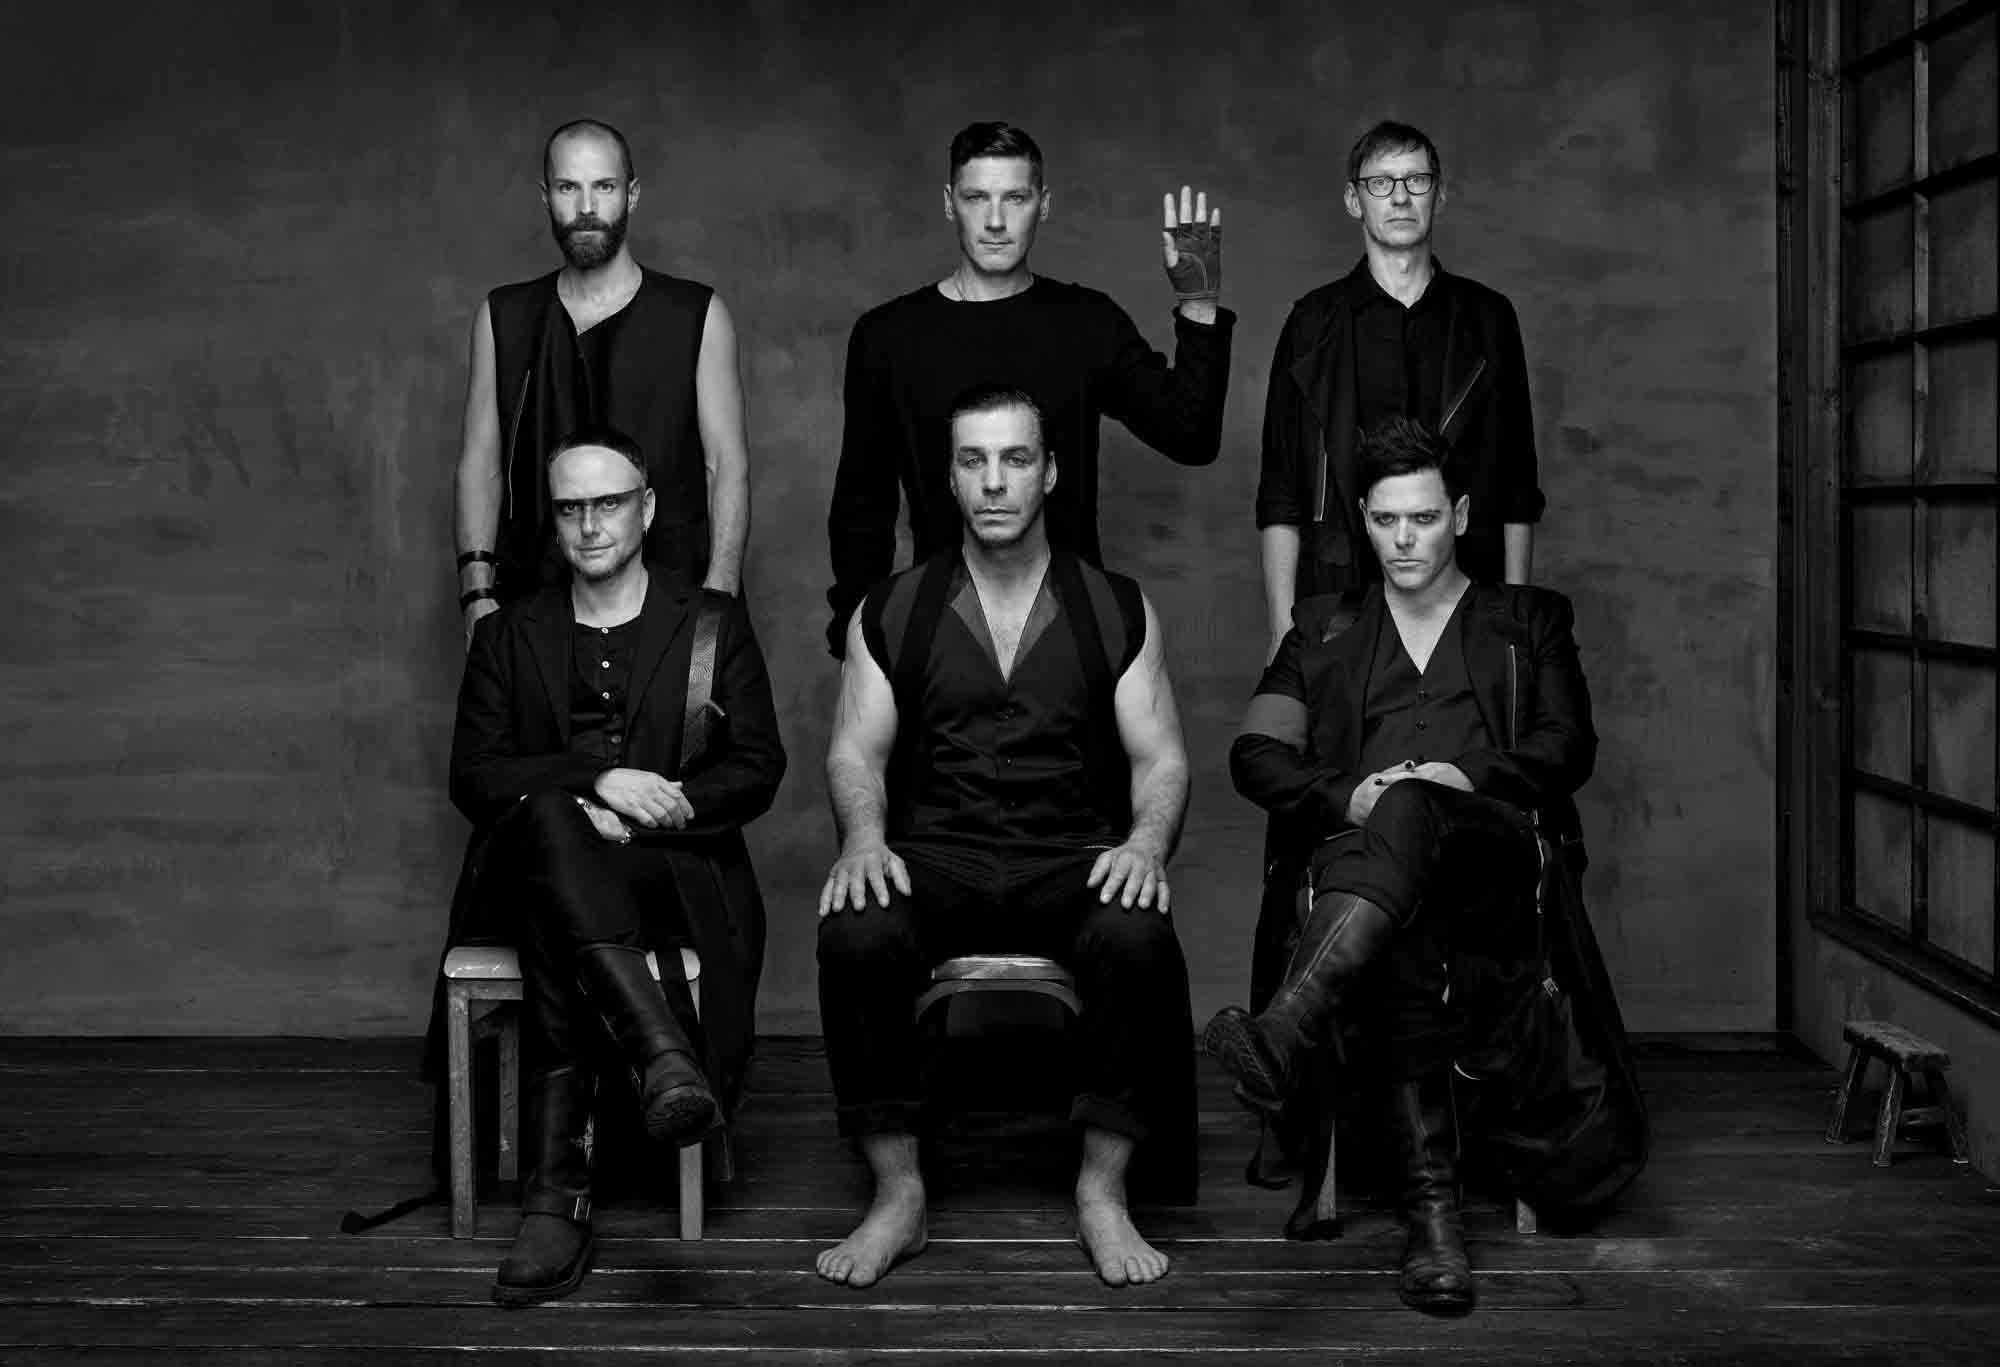 RAMMSTEIN new album due in April 2019 with 5 music videos